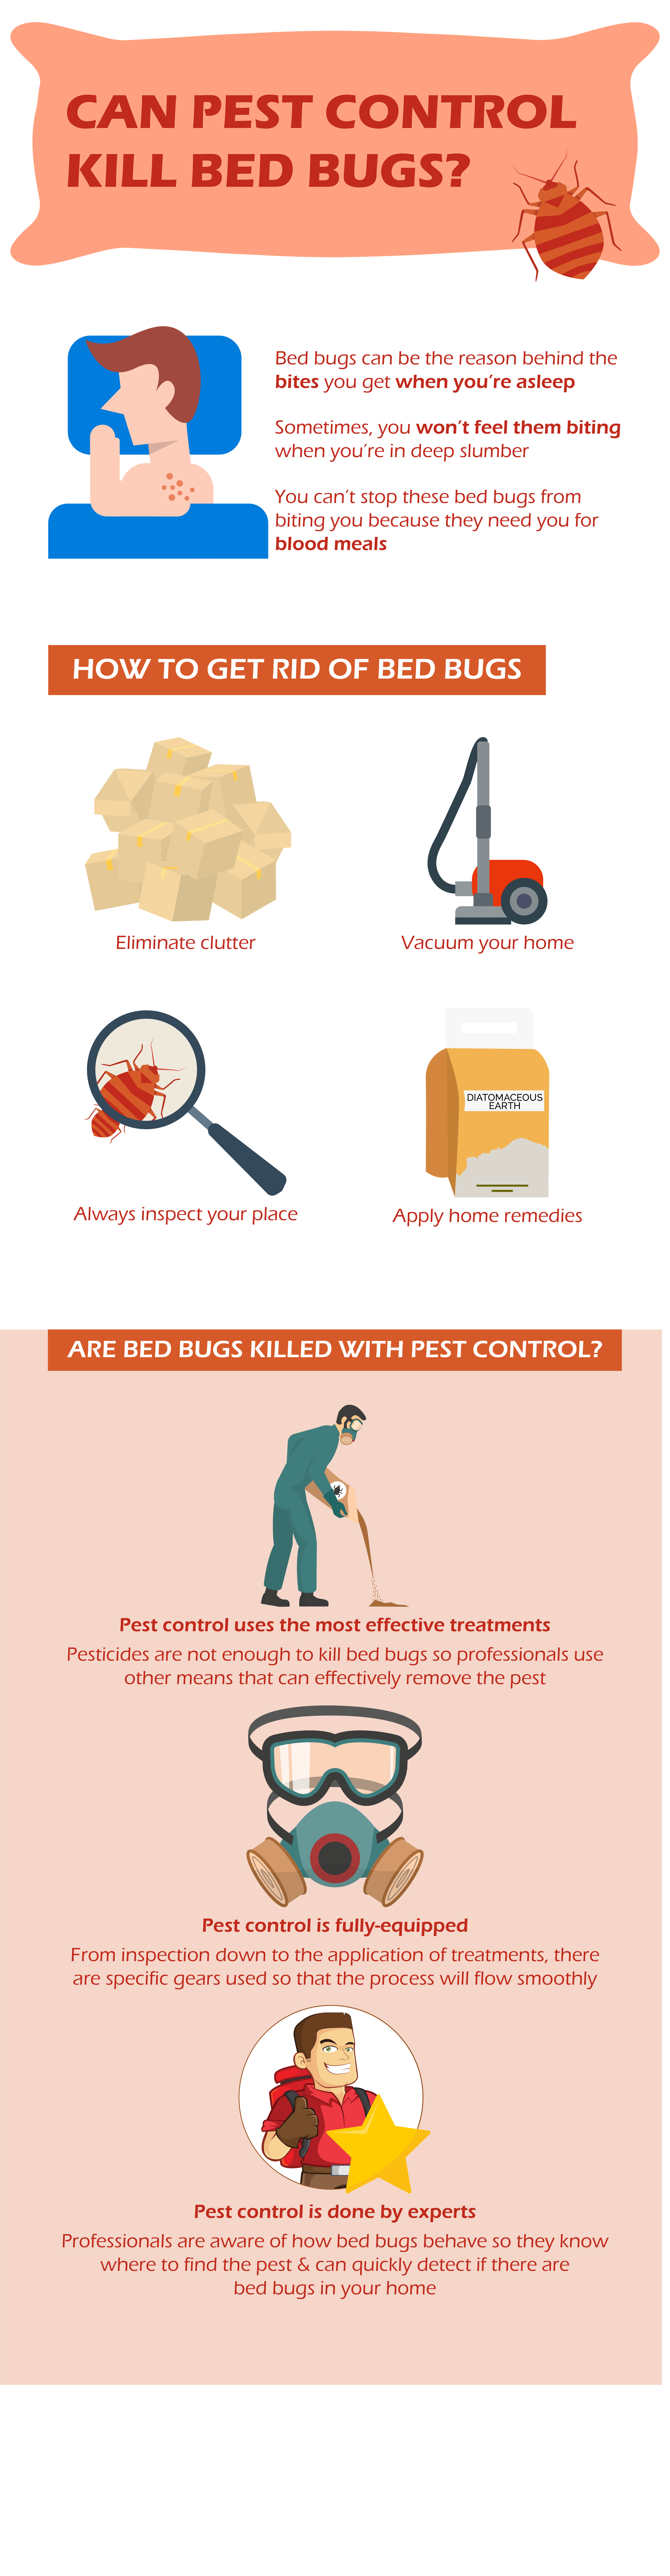 BED BUGS in 2020 Kill bed bugs, Pest control, Bed bugs